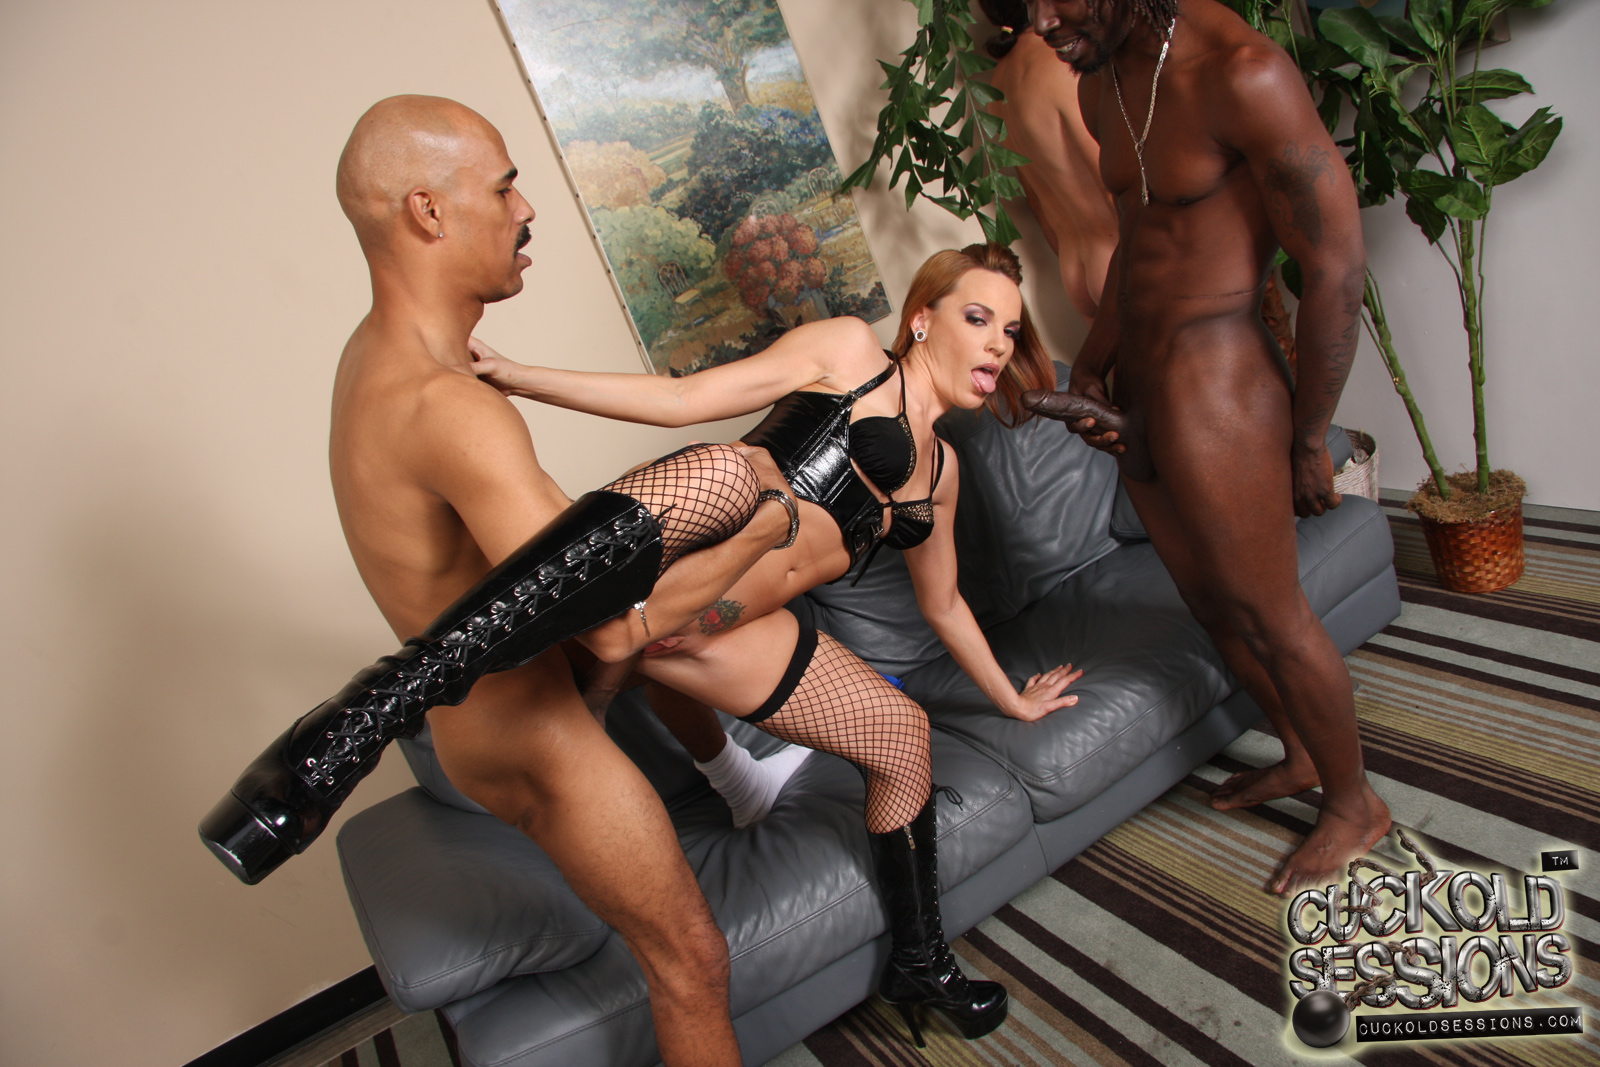 Galleries Cuckoldsessions Content Dana Dearmond Pic 28